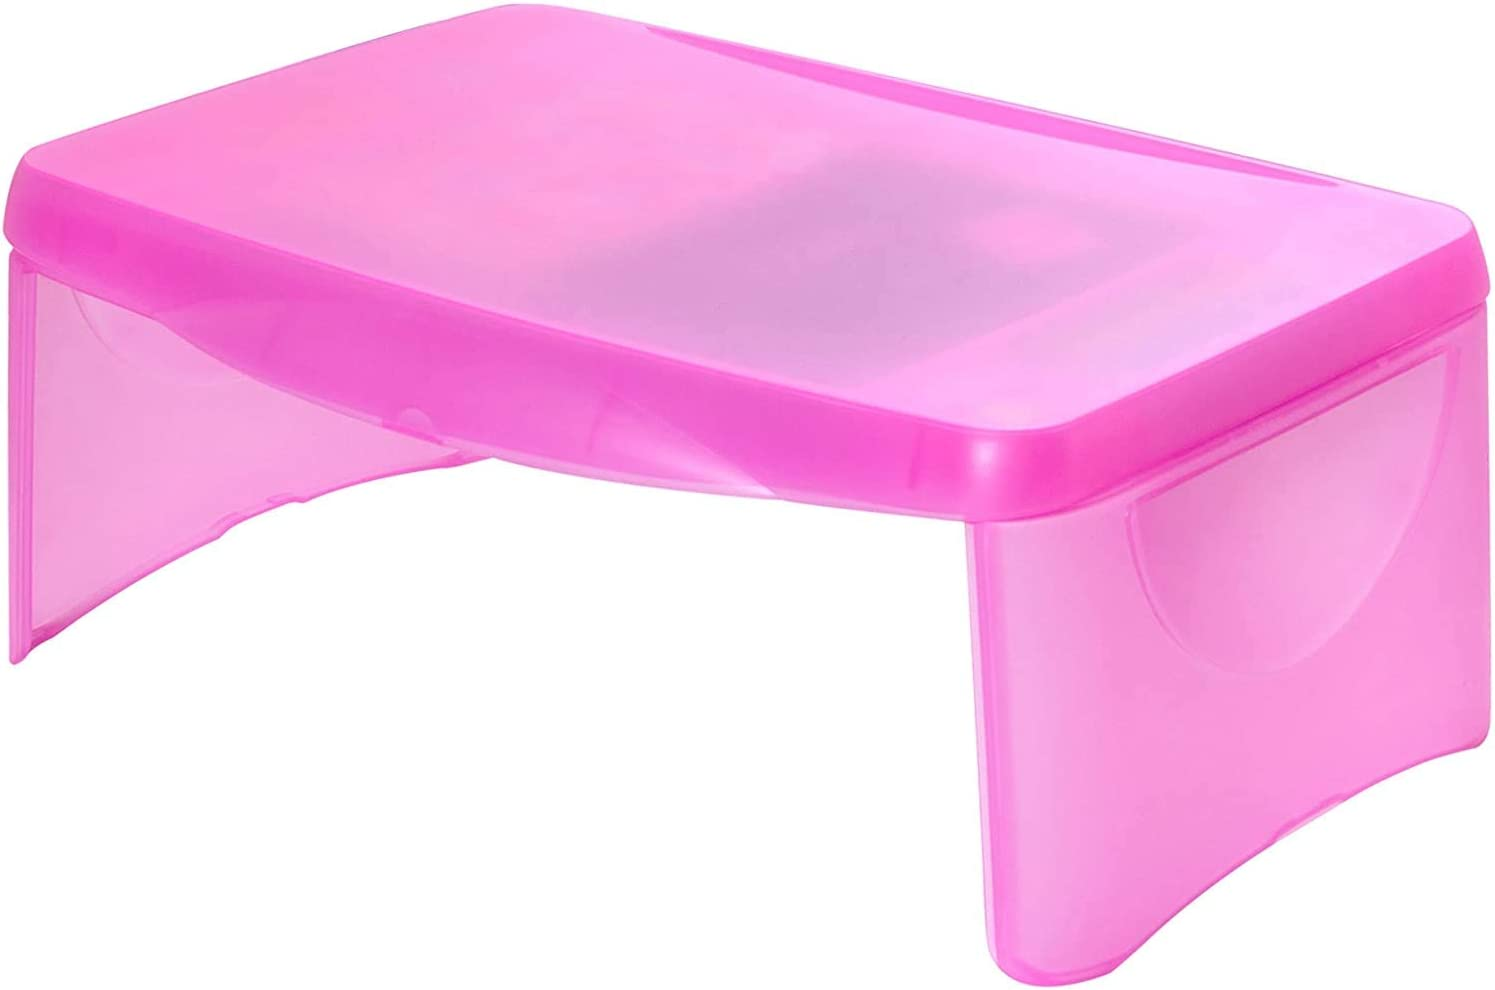 Dial Industries 706FP Deluxe Folding Lap Desk Tray, Pink